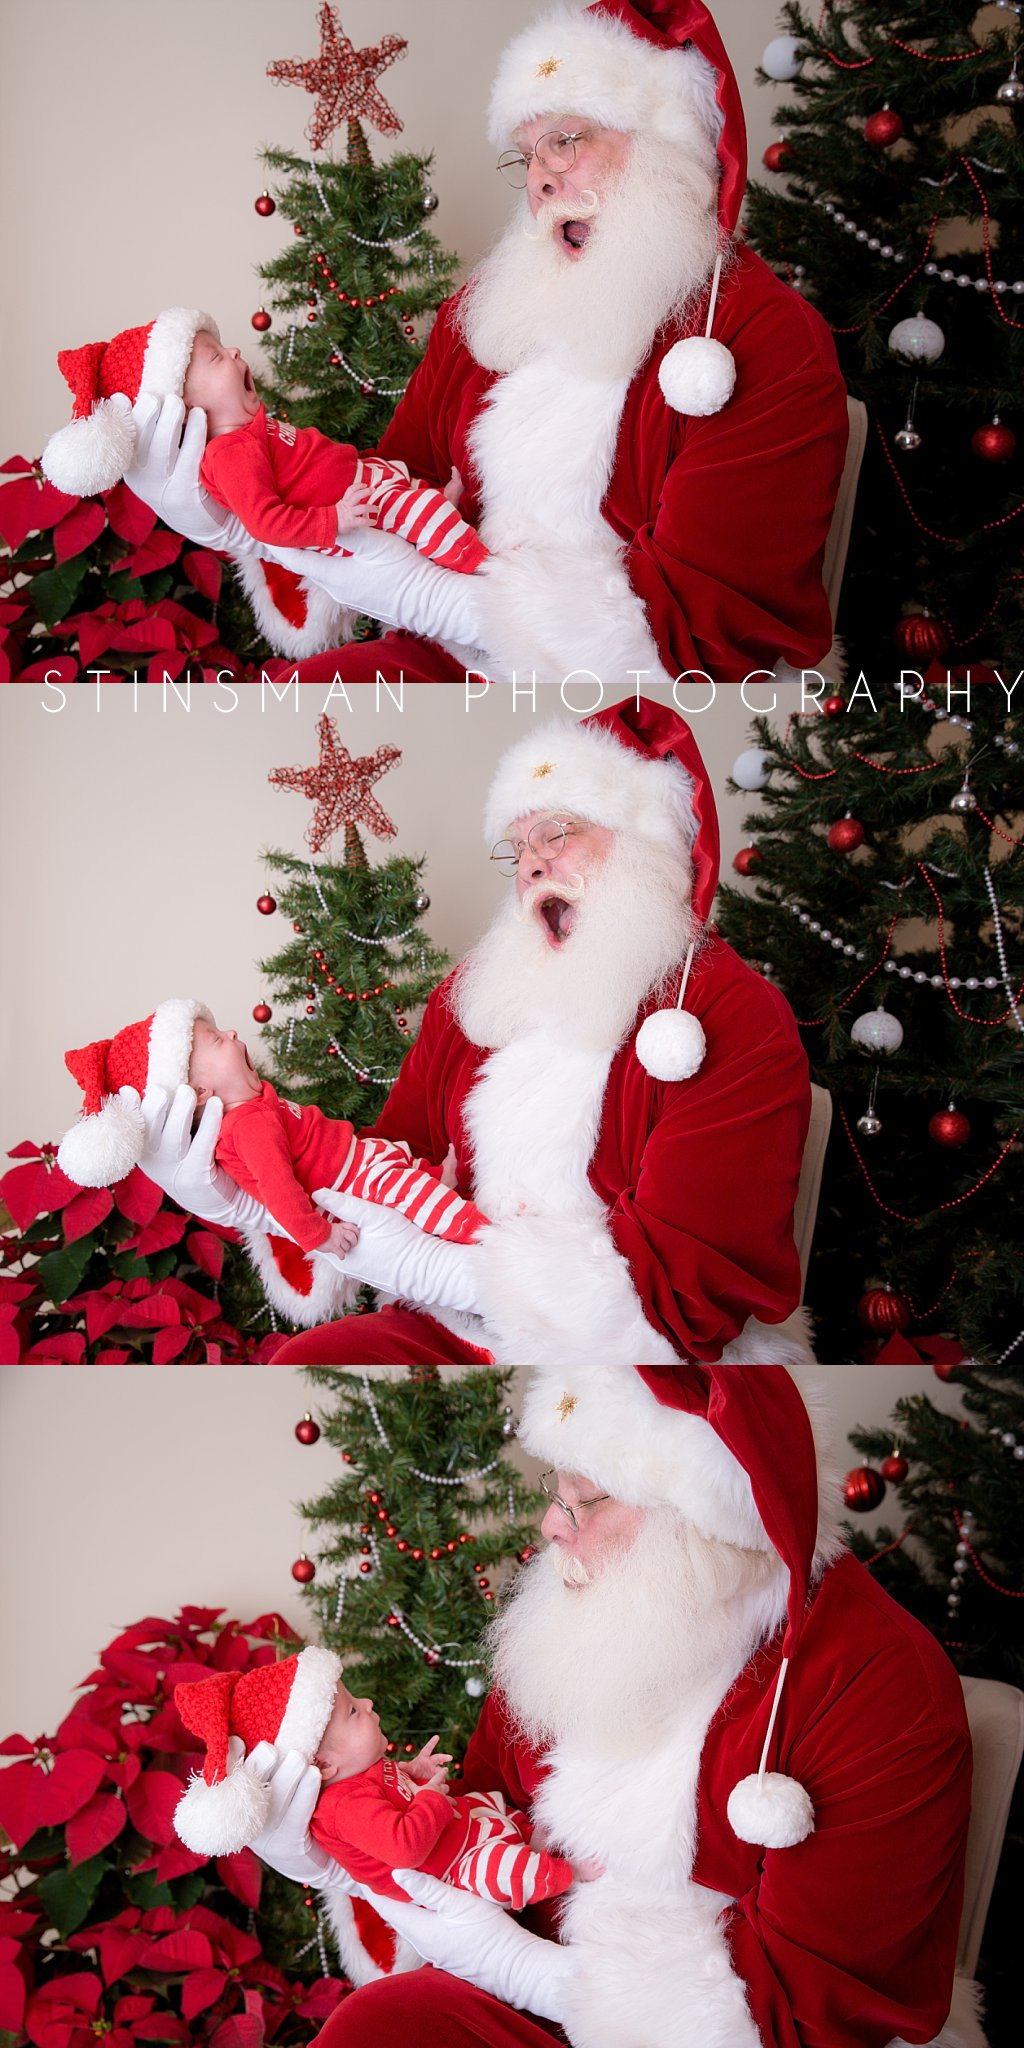 preemie baby and santa yawning in new jersey photography studio